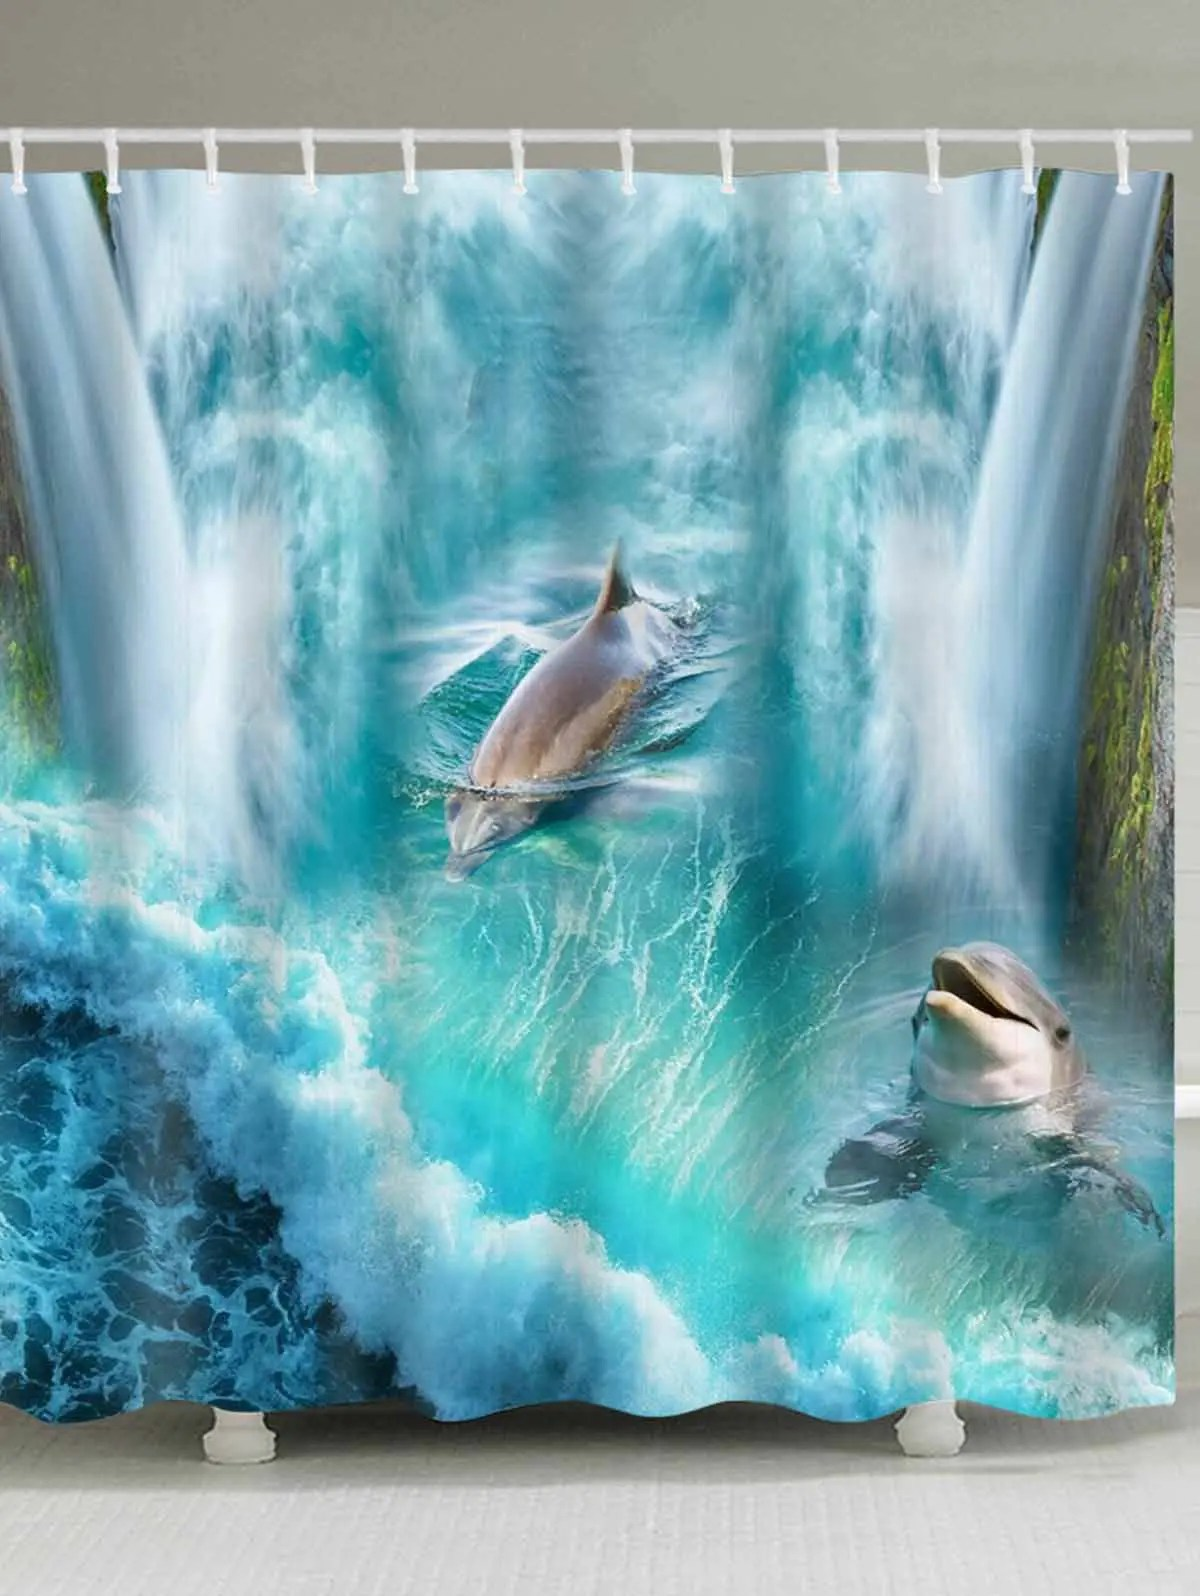 3d Dolphin Waterfall Print Shower Curtain Bathroom Decor